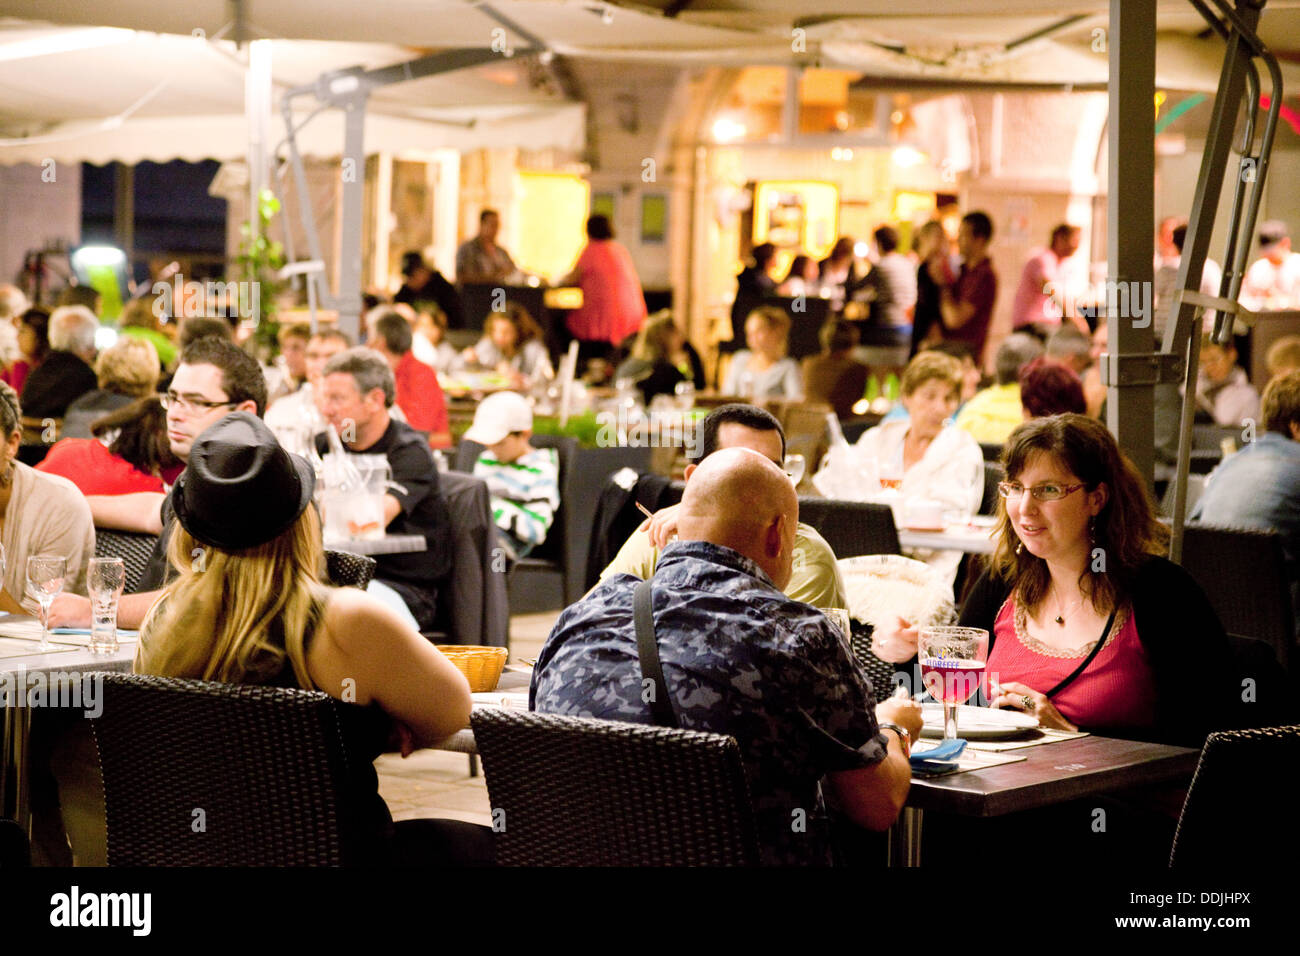 People eating and drinking in a  restaurant, Blois, Loir et Cher, The Loire valley, France Europe - Stock Image